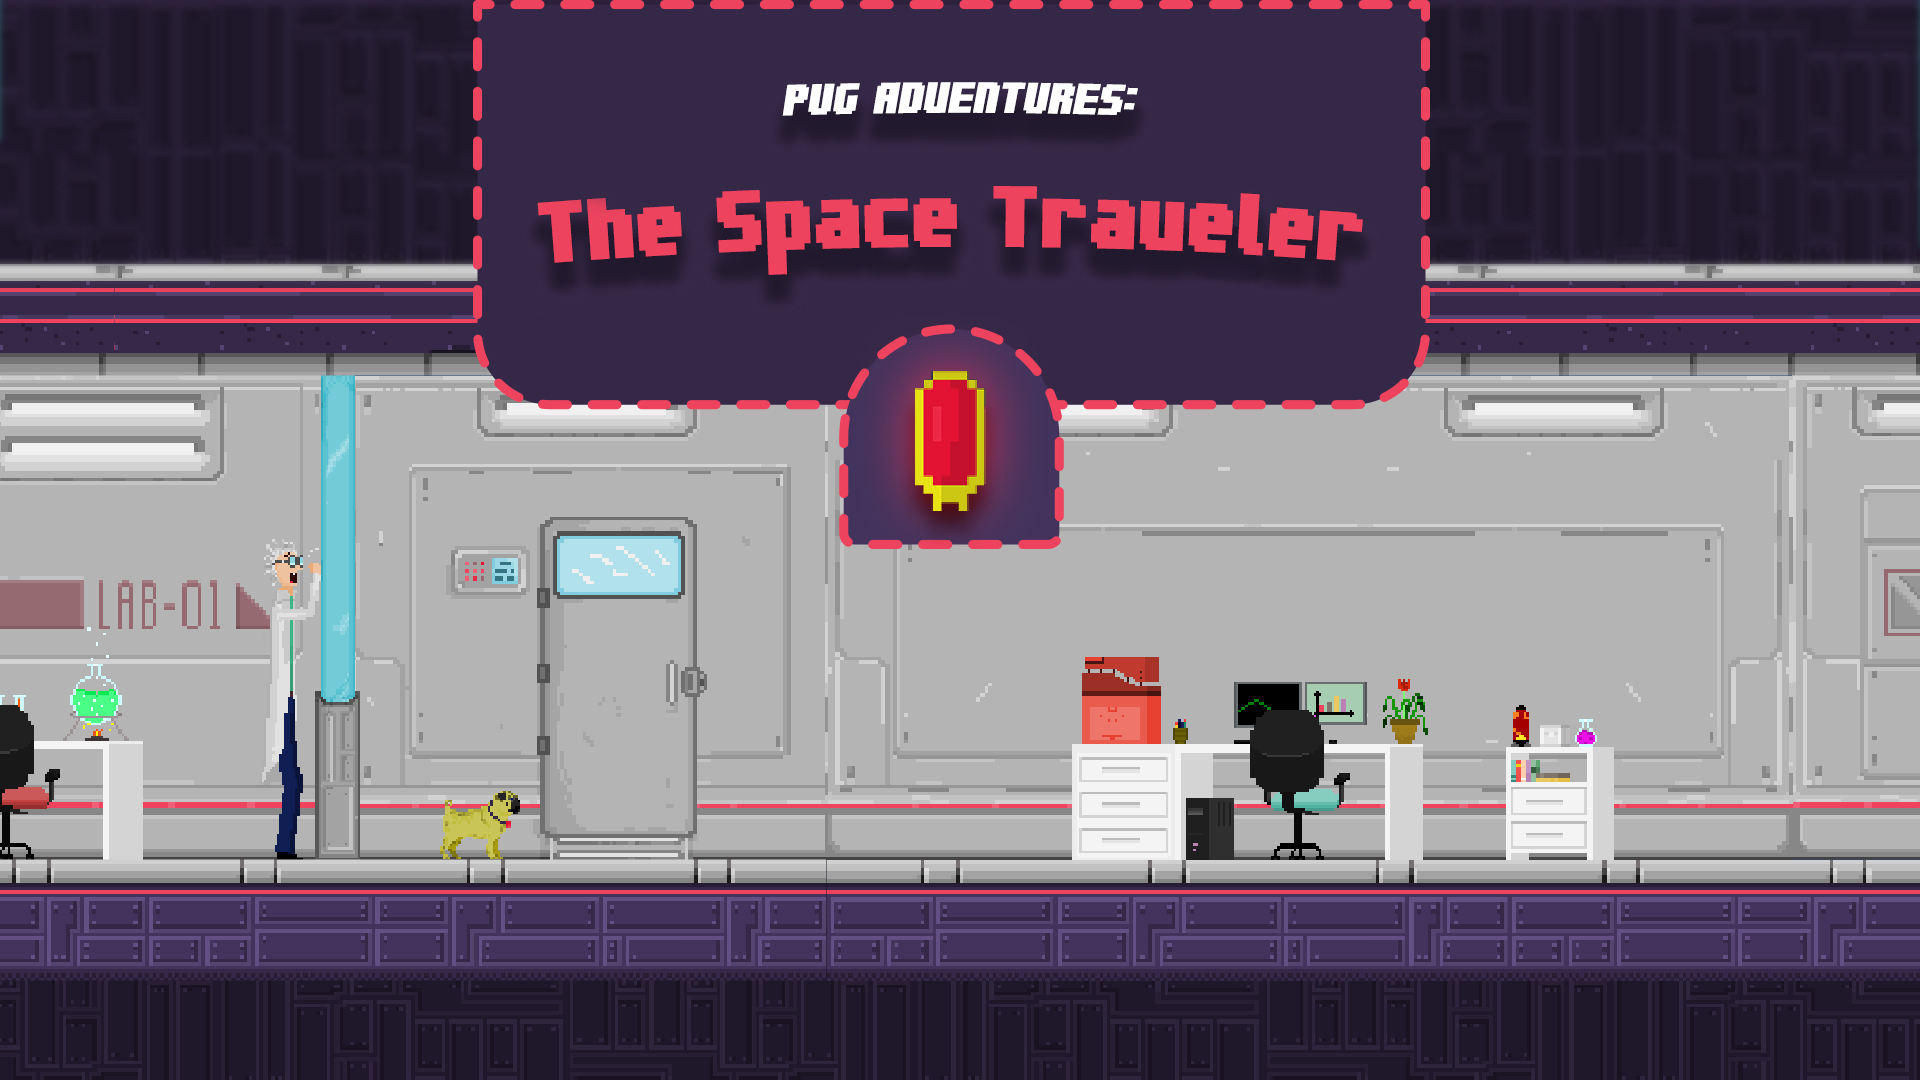 The Space Traveling Pug